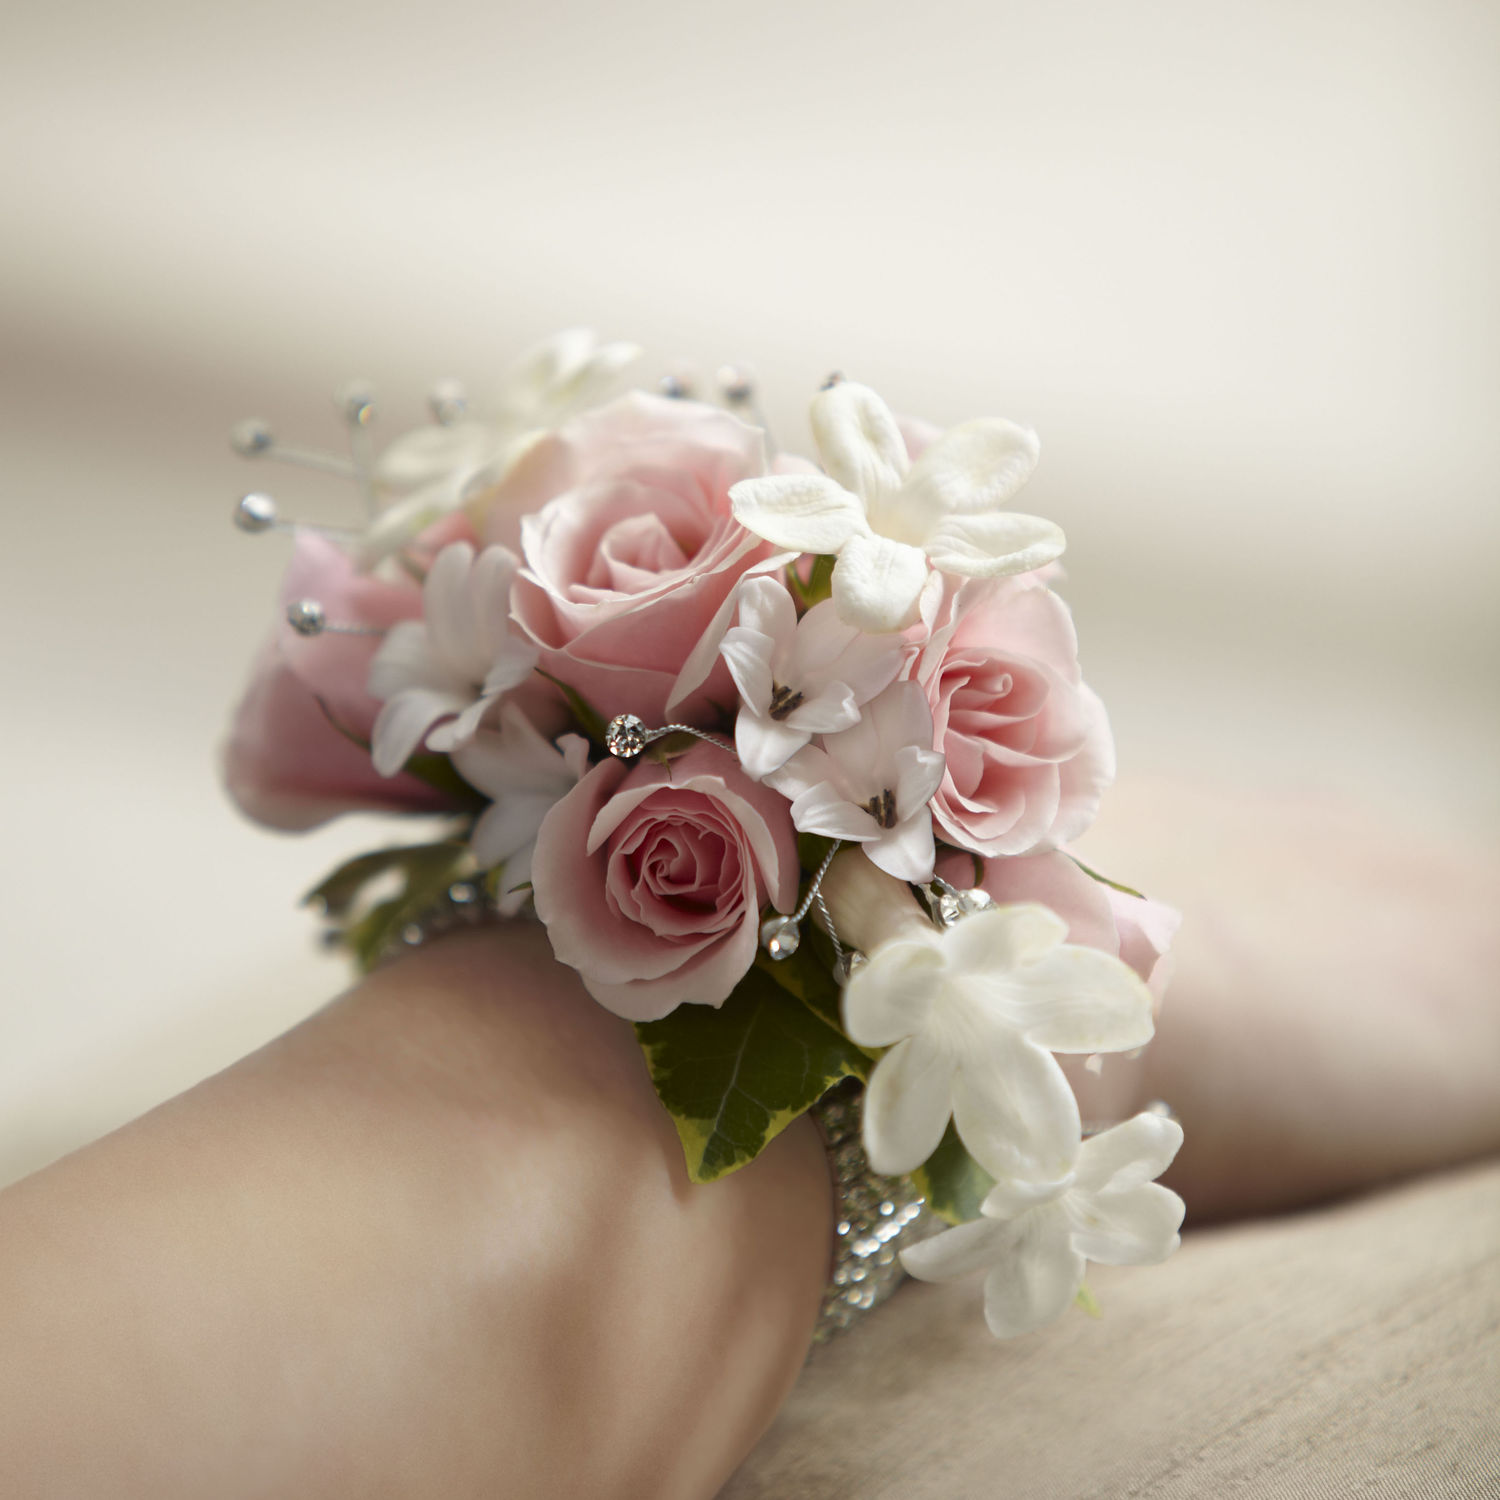 Wrist Corsage: Prom Flowers Wrist Corsage